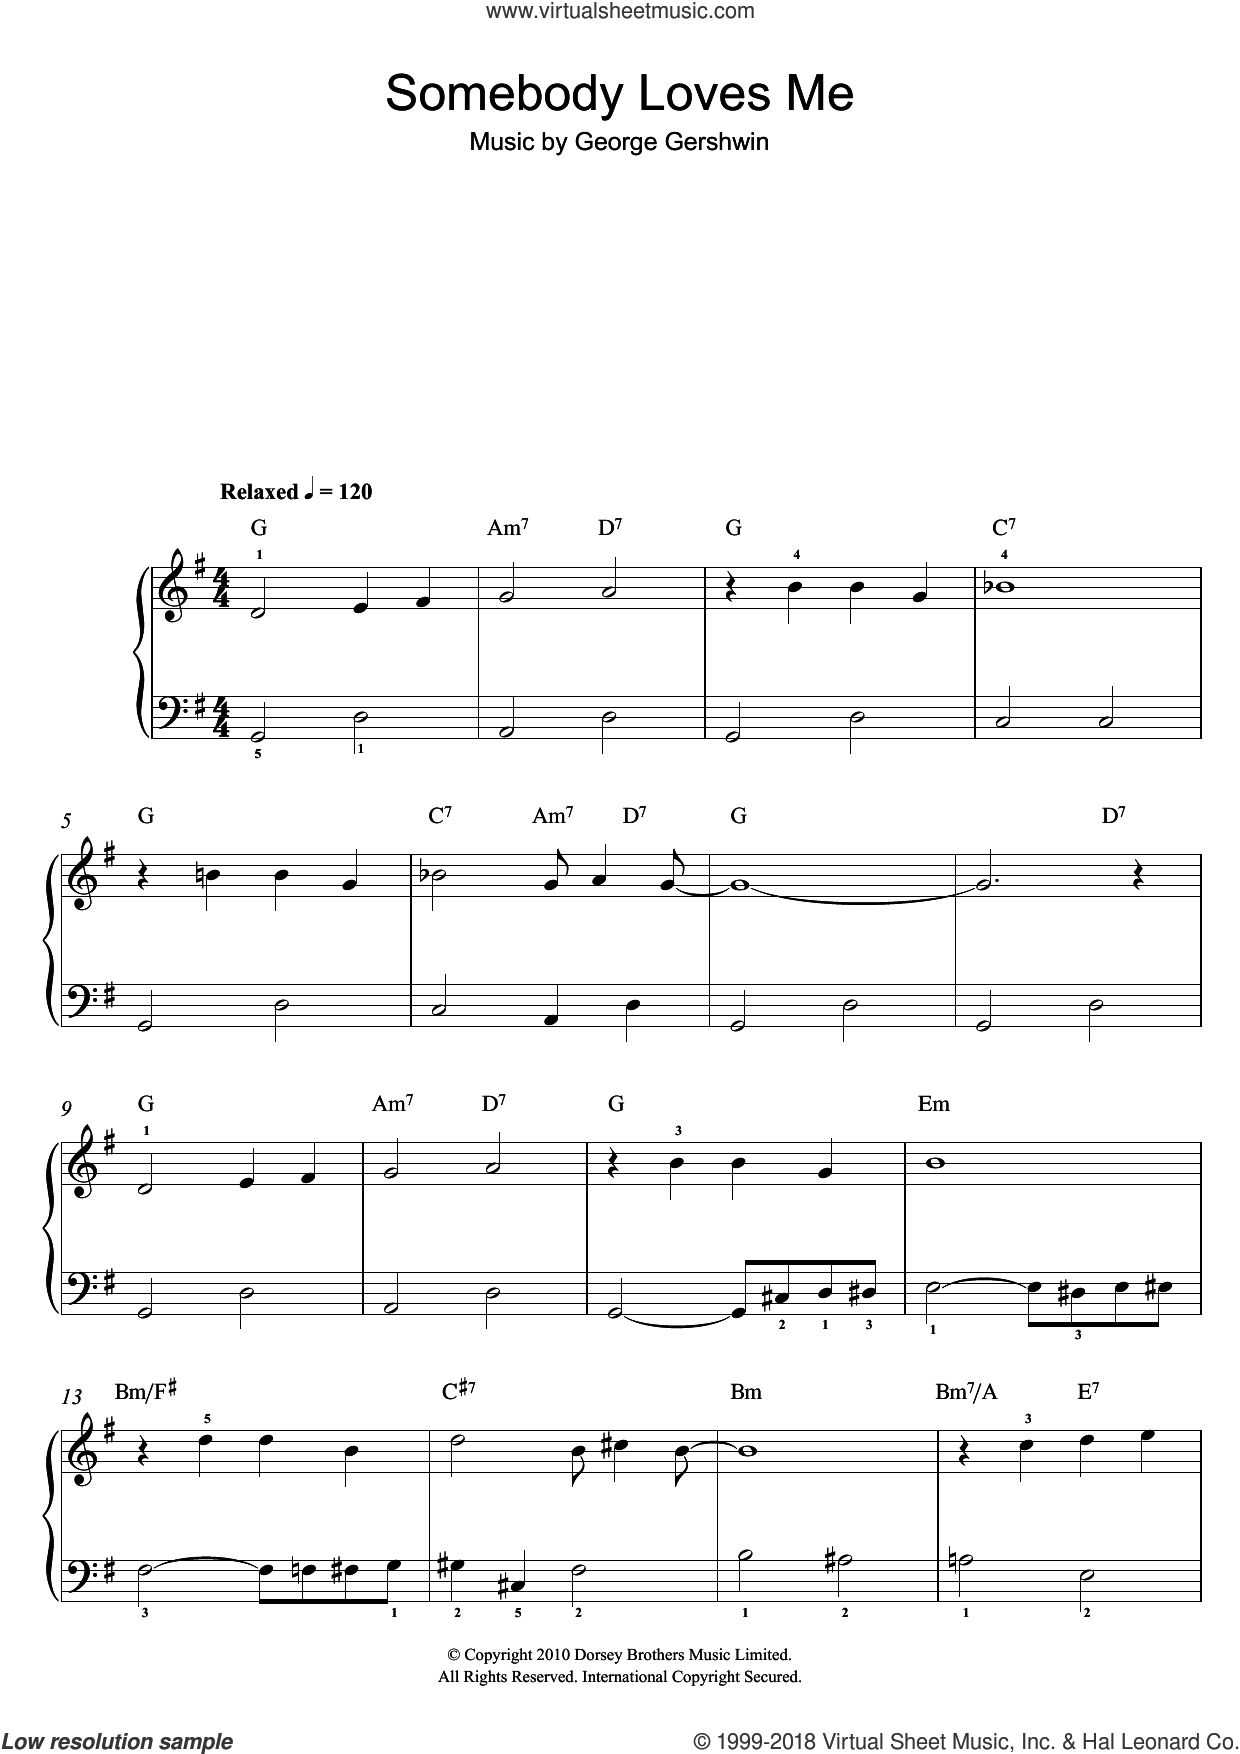 Gershwin - Somebody Loves Me sheet music for piano solo [PDF]